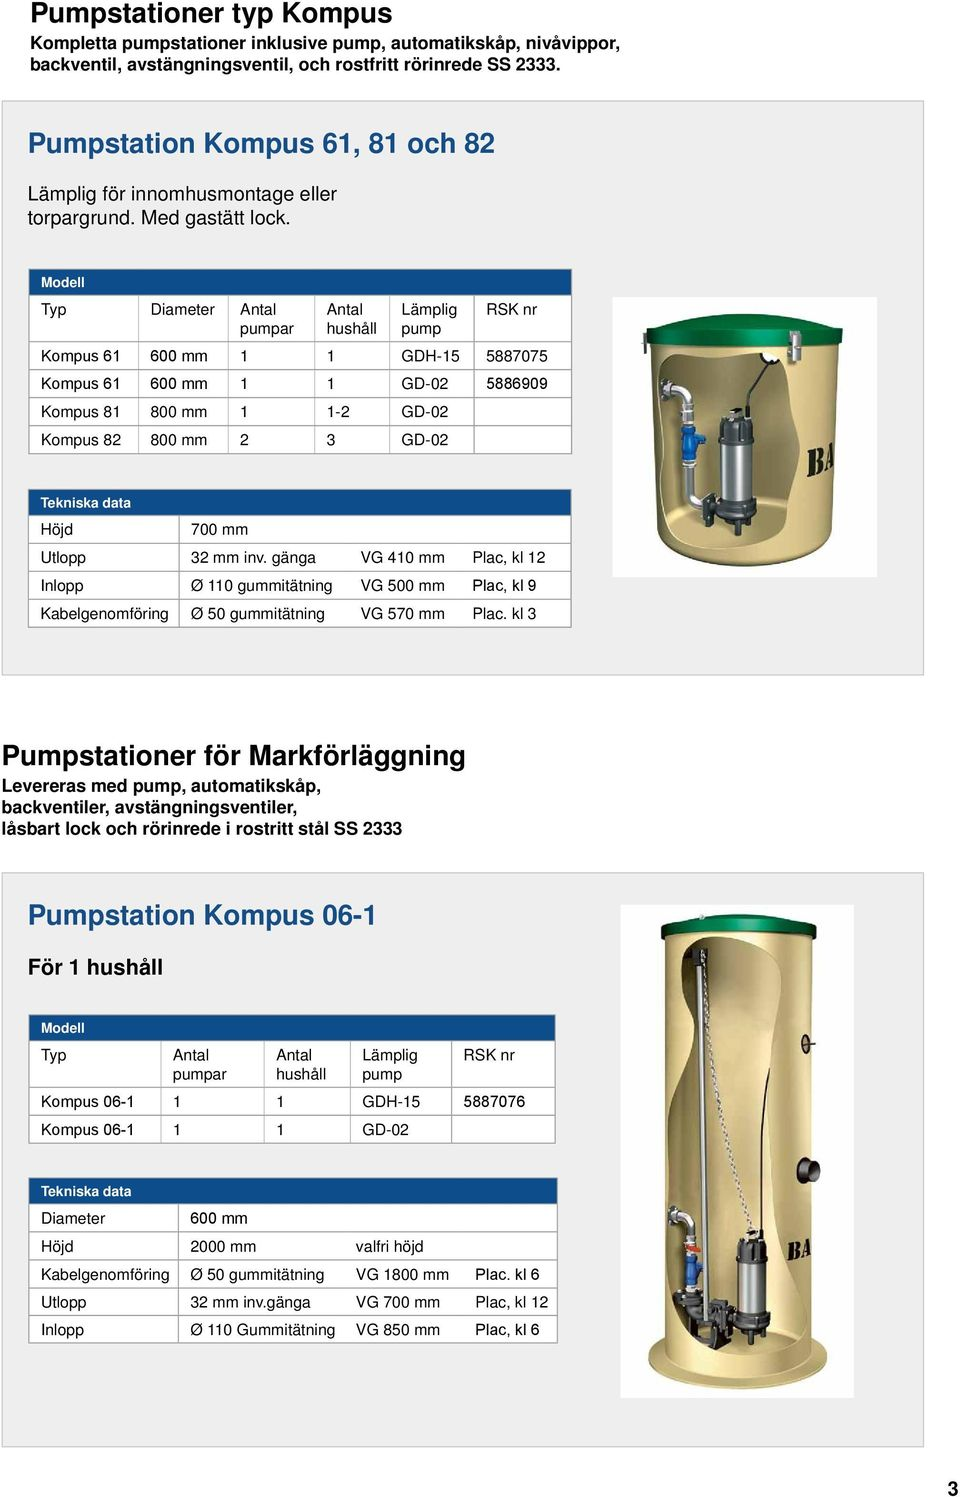 Diameter Lämplig RSK nr pump Kompus 61 600 mm 1 1 GDH-15 5887075 Kompus 61 600 mm 1 1 GD-02 5886909 Kompus 81 800 mm 1 1-2 GD-02 Kompus 82 800 mm 2 3 GD-02 Höjd 700 mm Utlopp 32 mm inv.